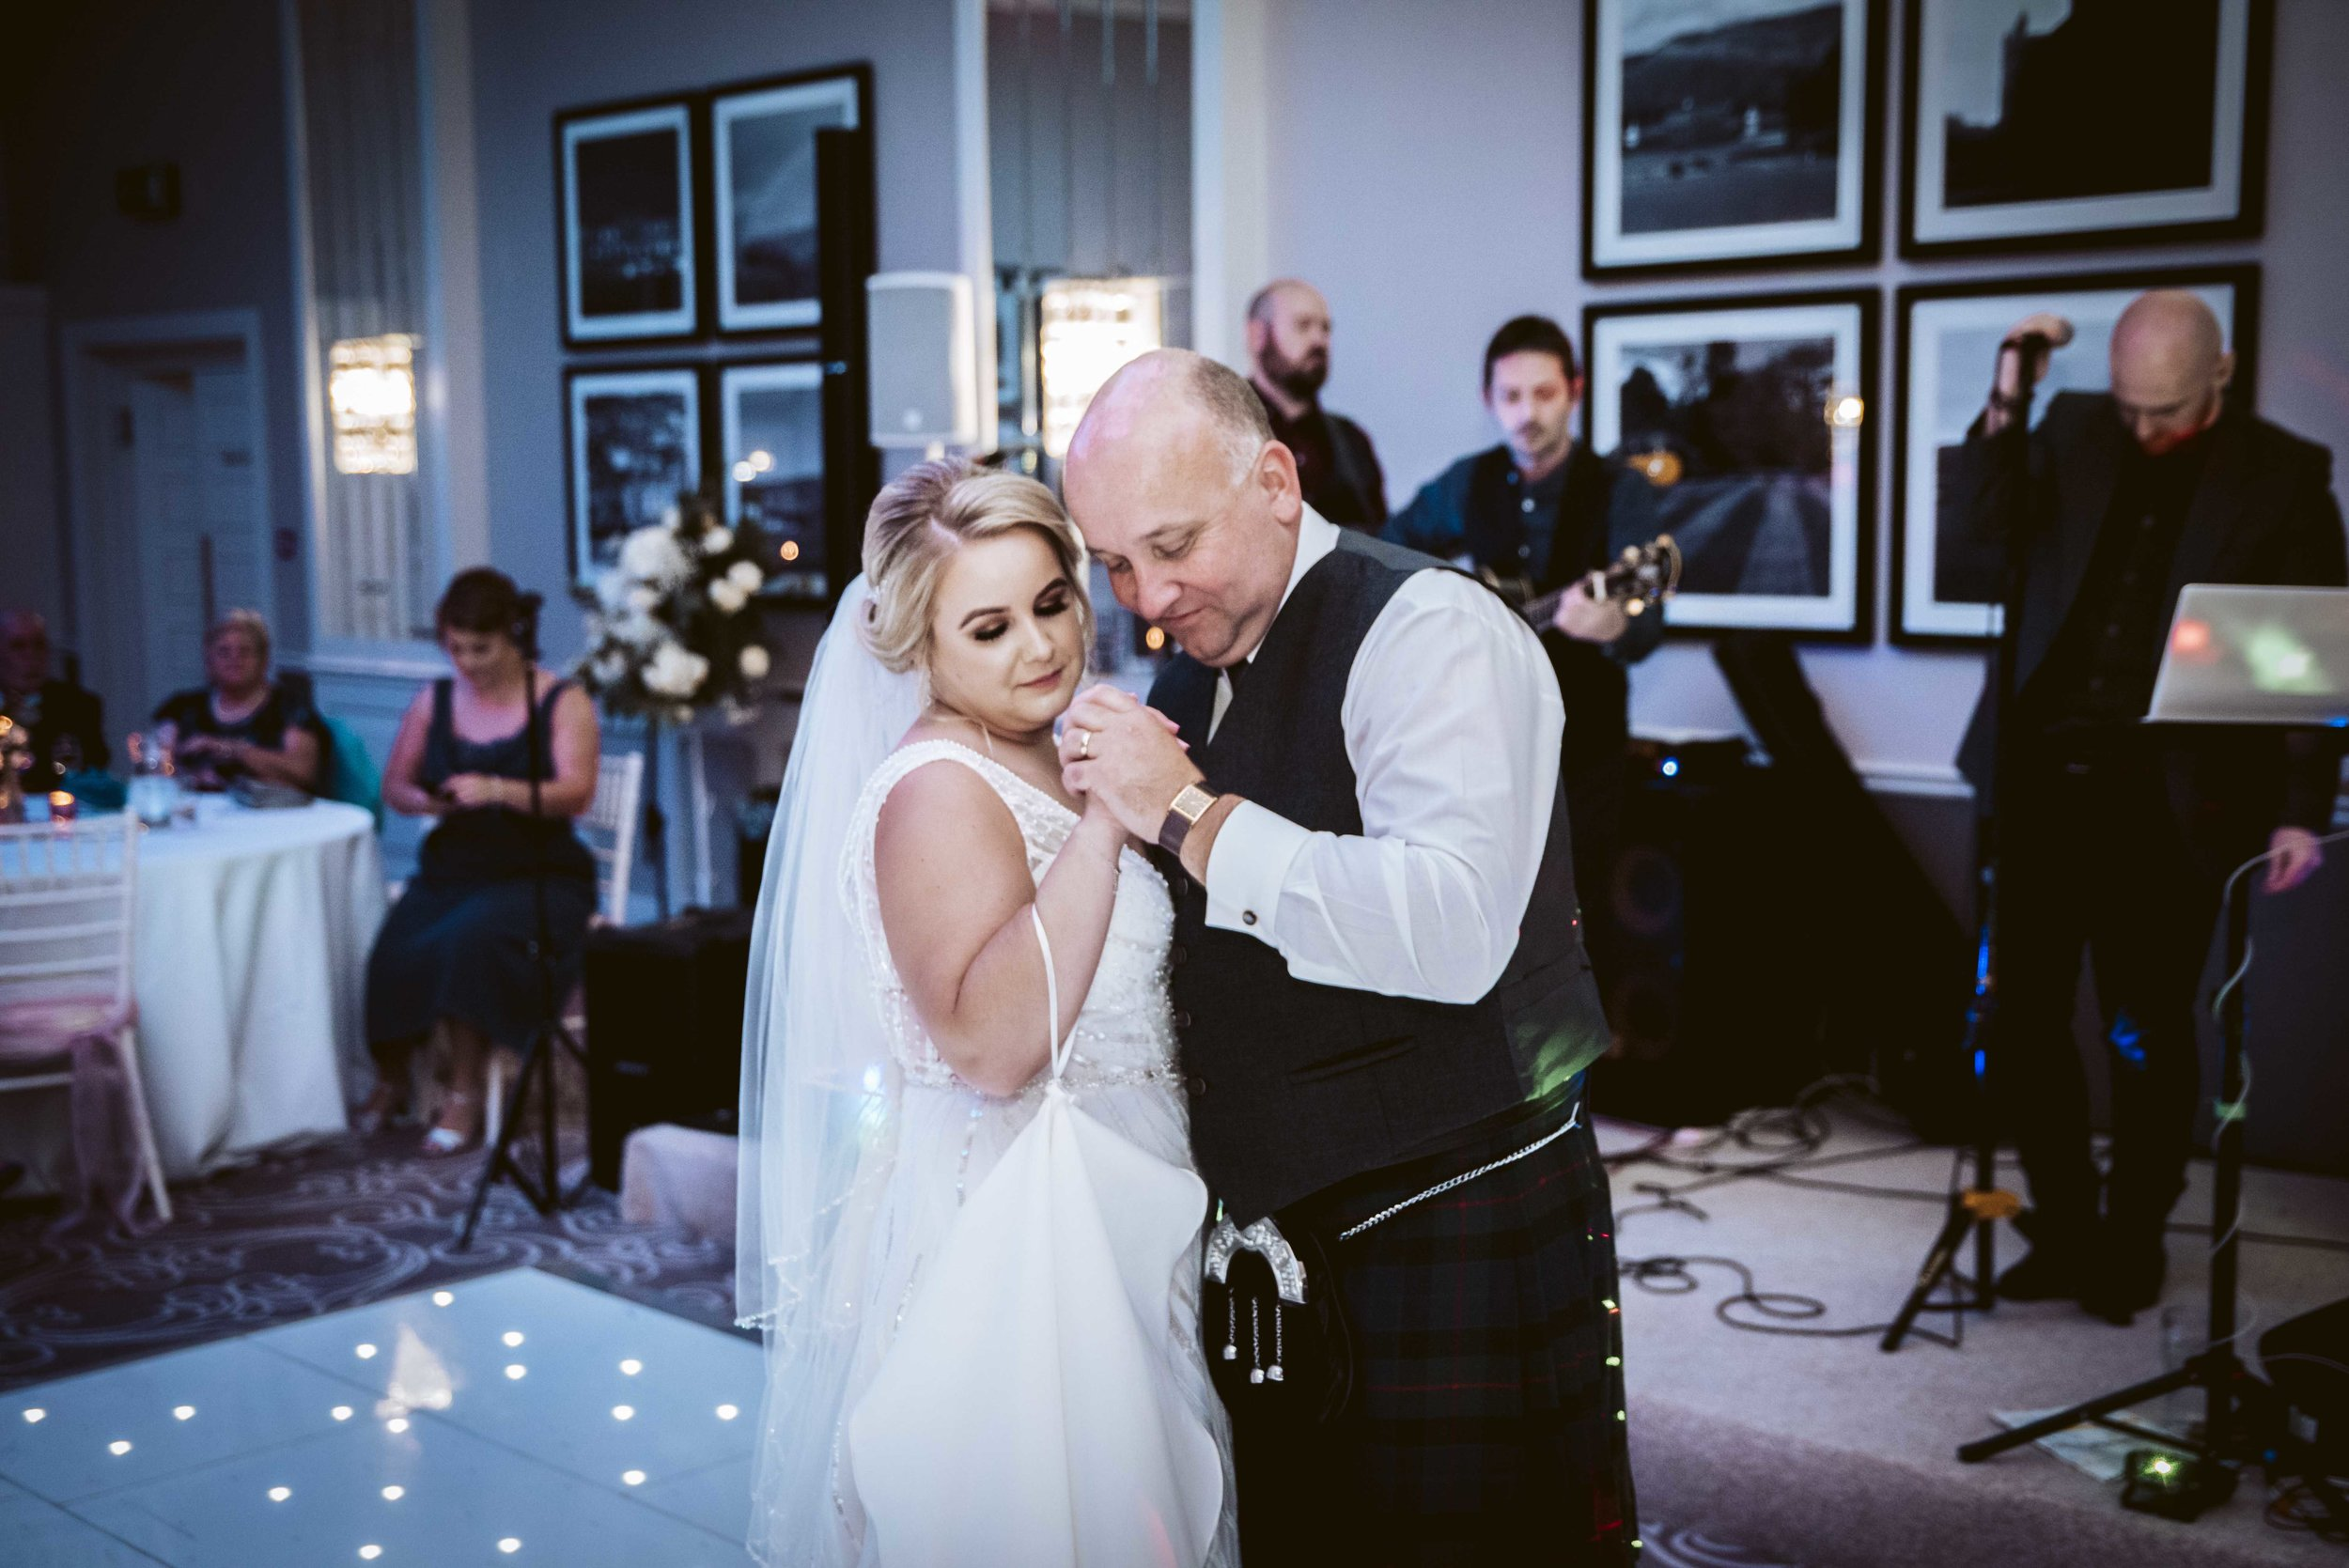 Mar Hall Wedding 2018, Haminsh & Emma McEwan 83.JPG